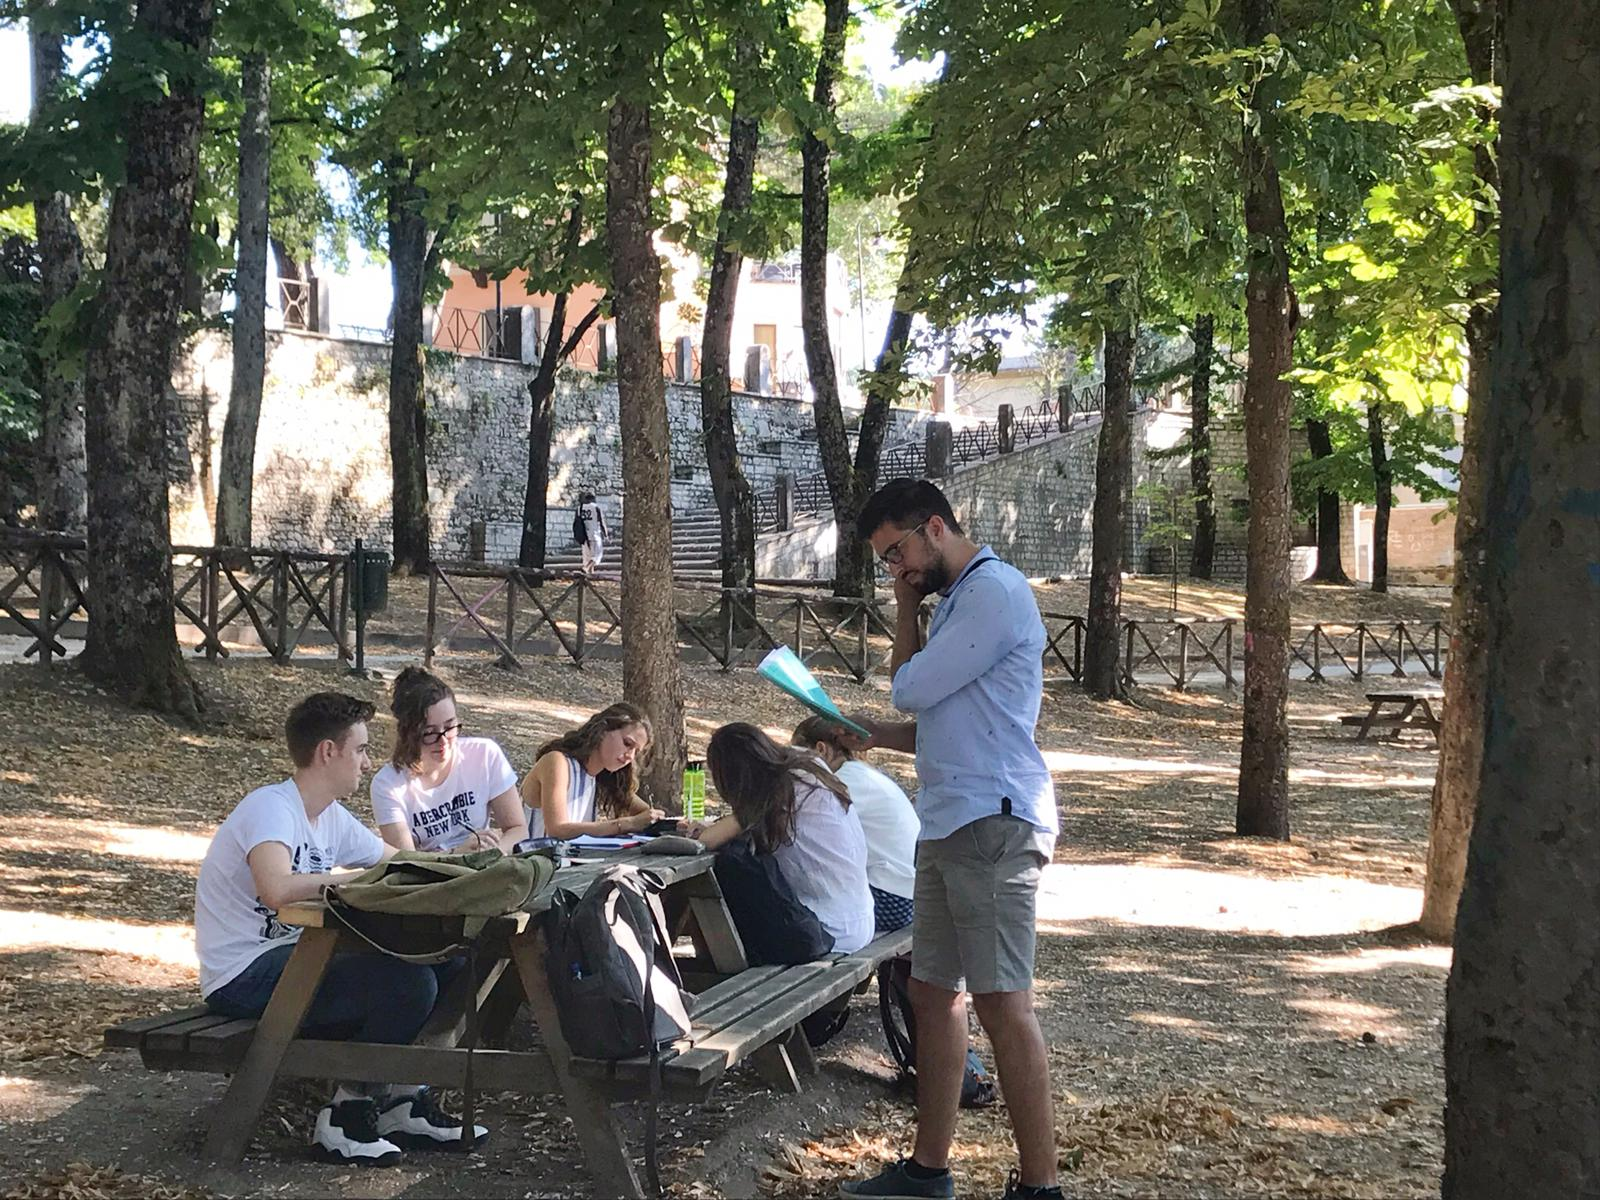 AJ and the creative writing students in the park of Spoleto